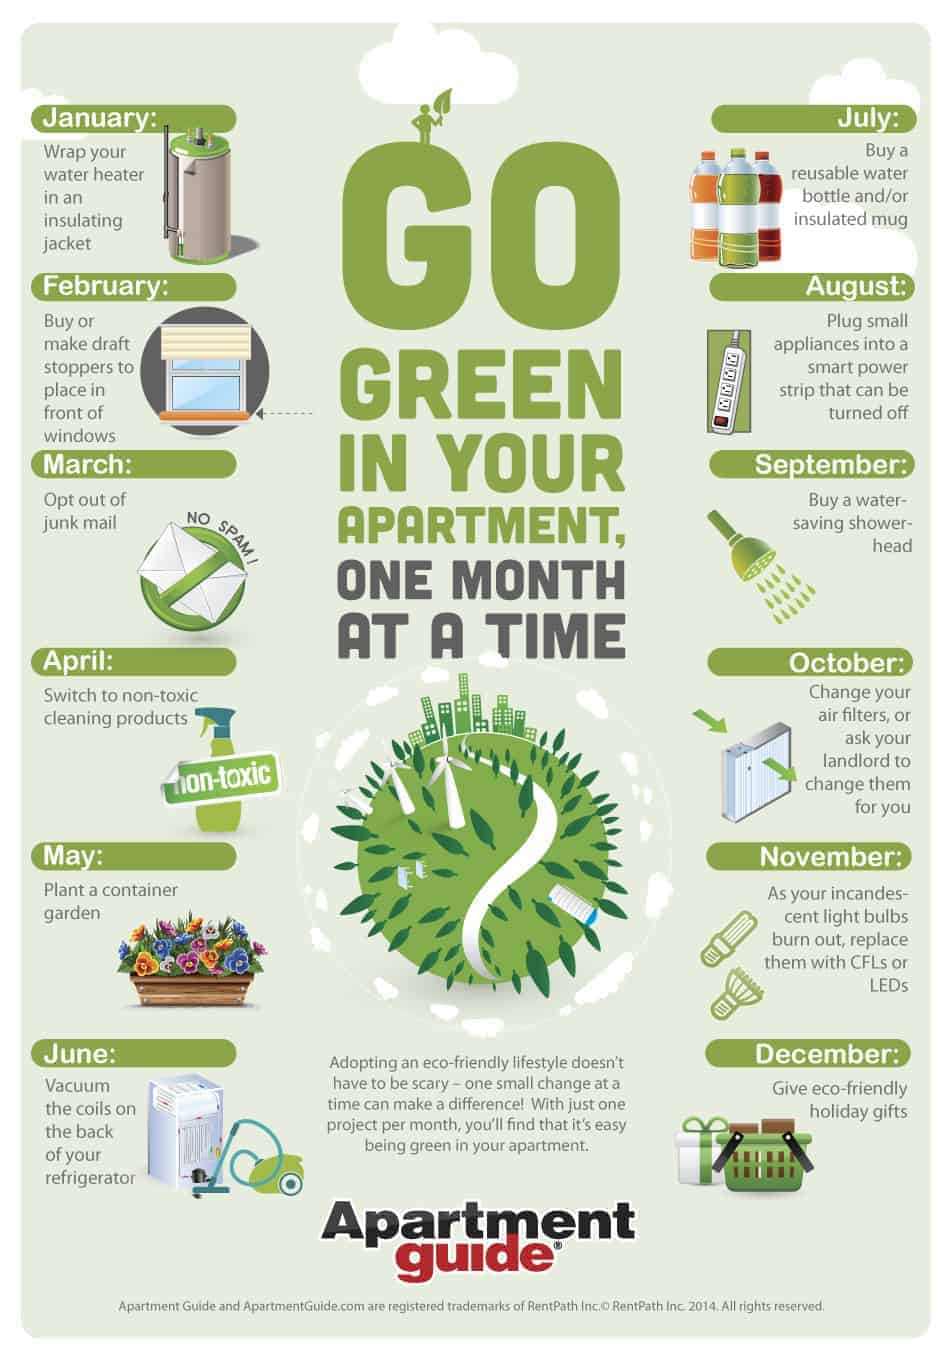 Go green in your apartment